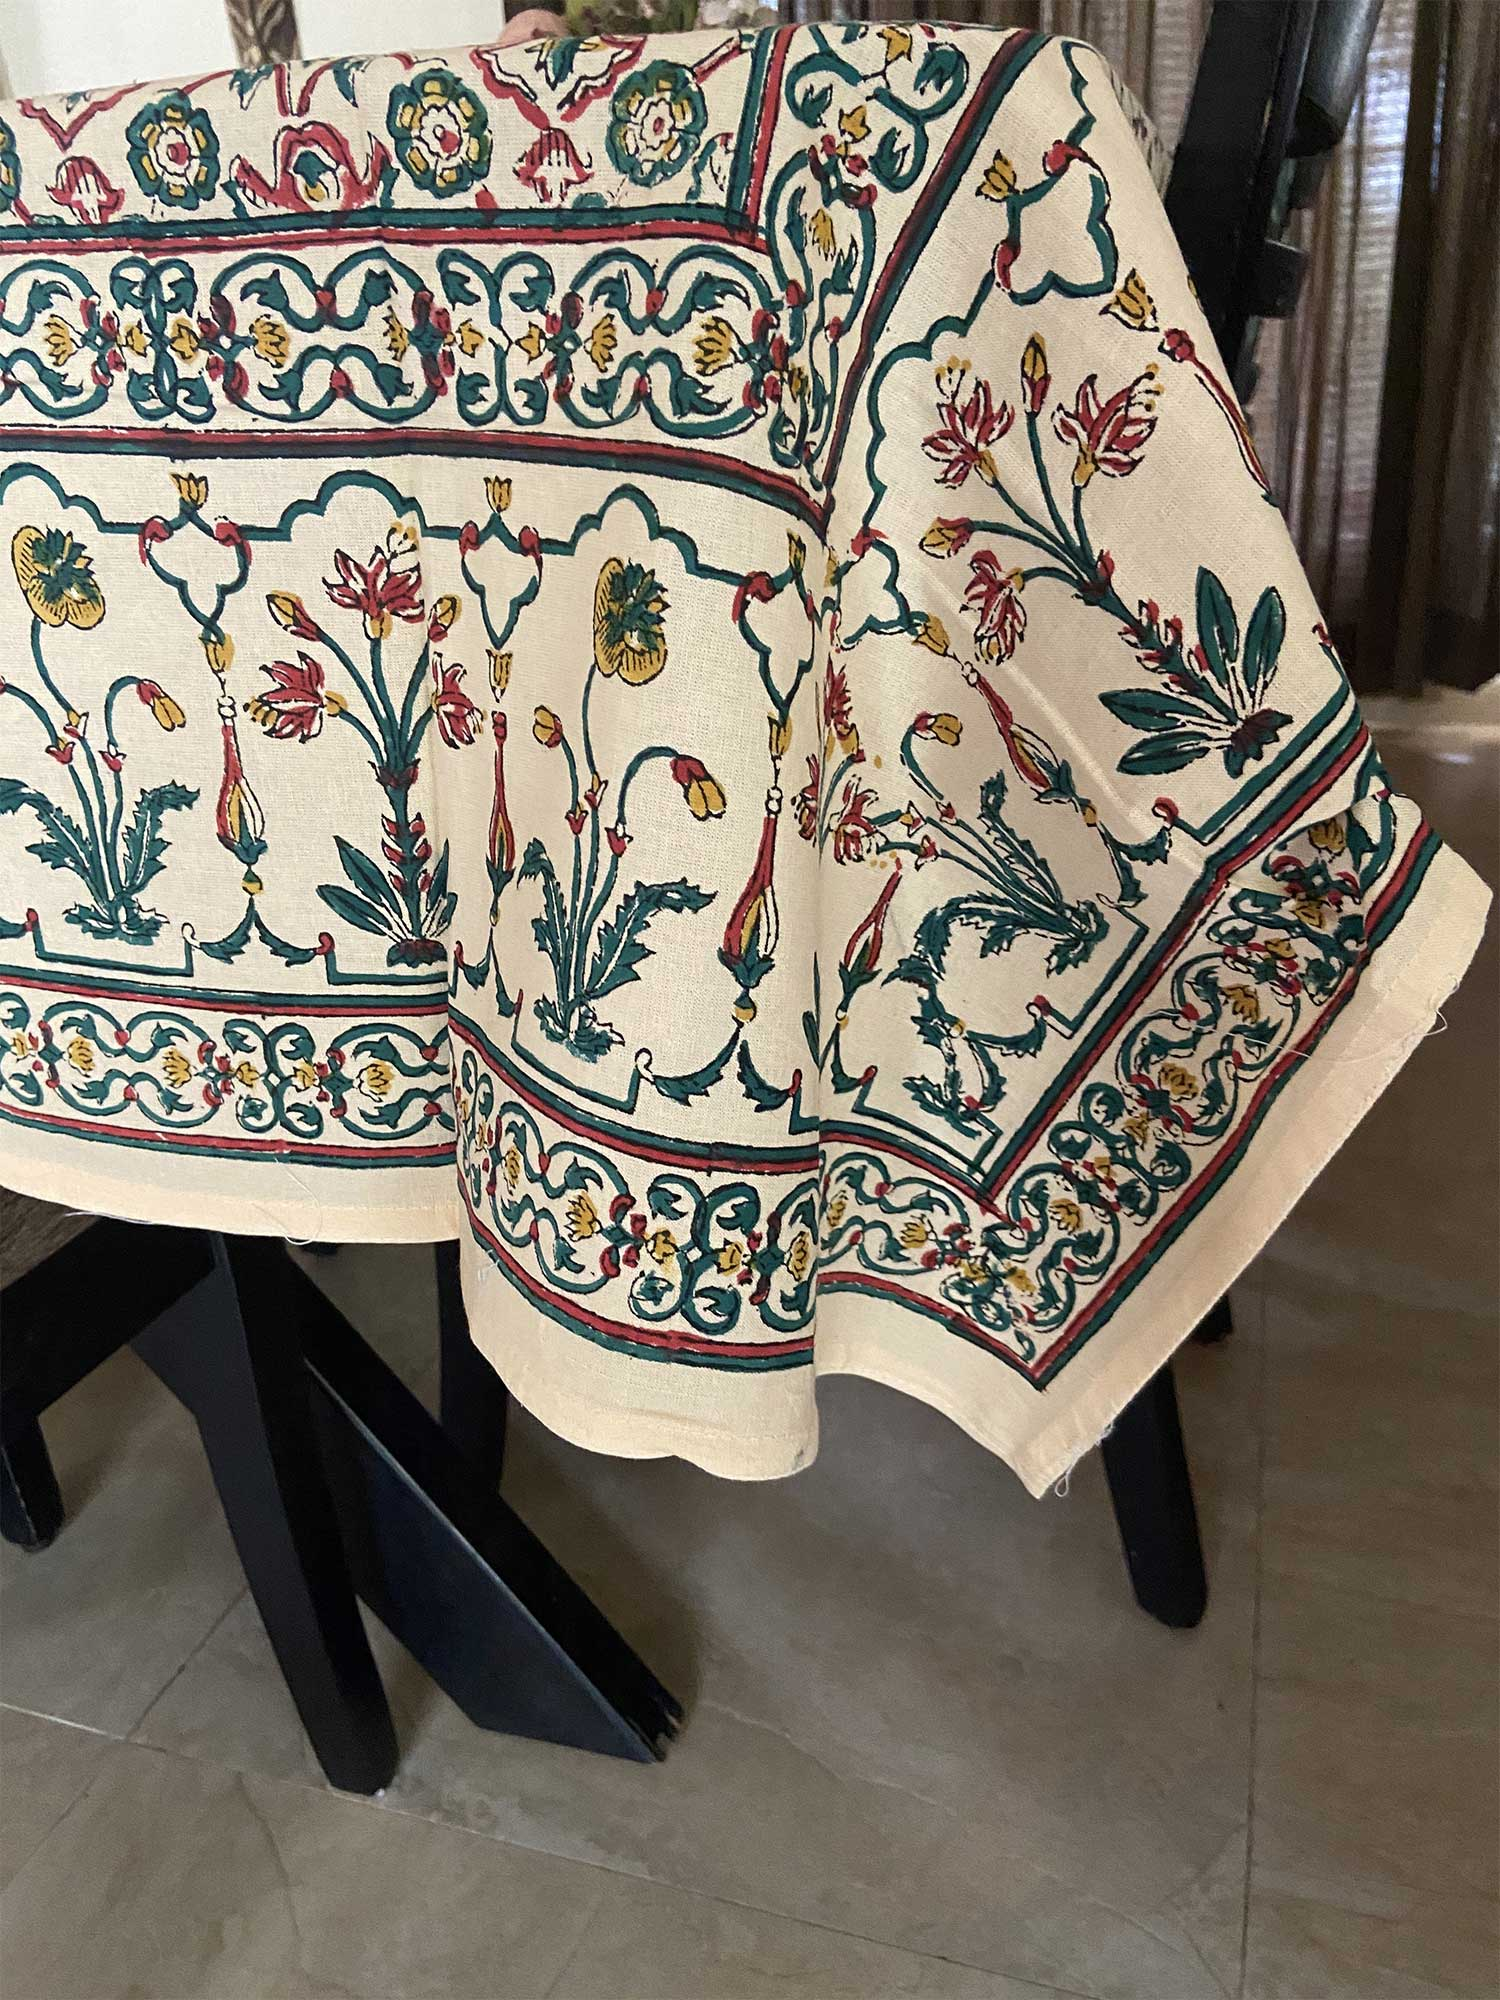 Jaipuri 8 Seater Cotton Table Cover  - 8013